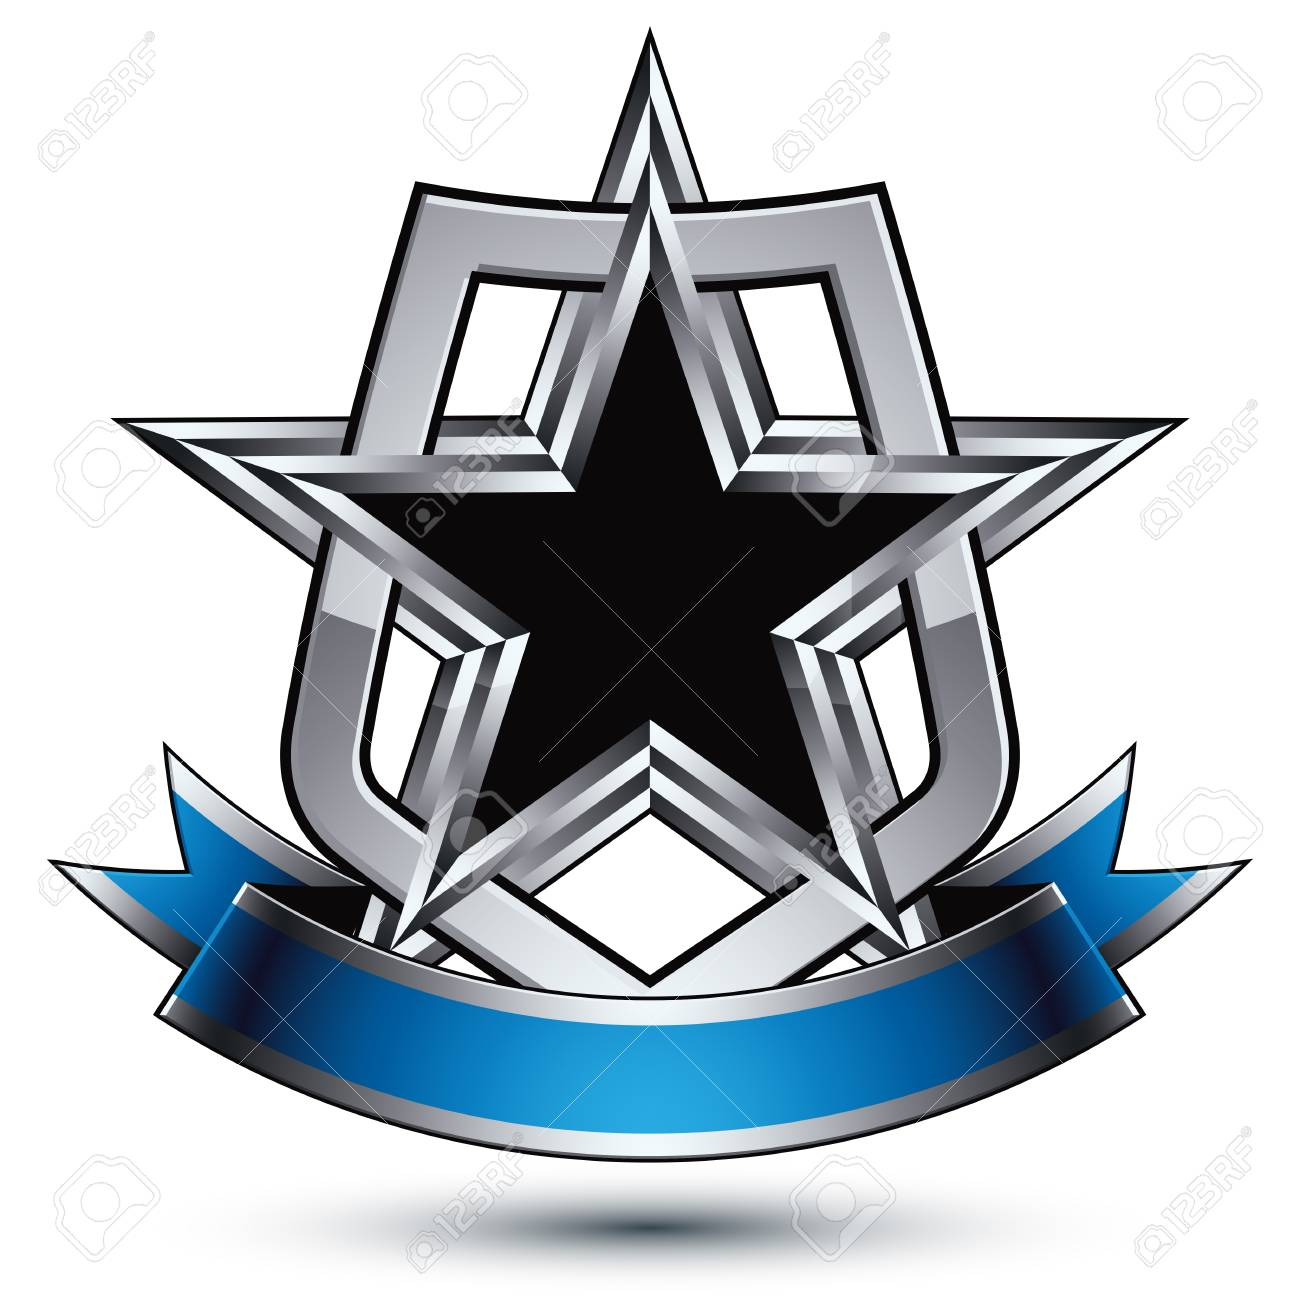 Heraldic Vector Template With Five Pentagonal Silver Stars And ...